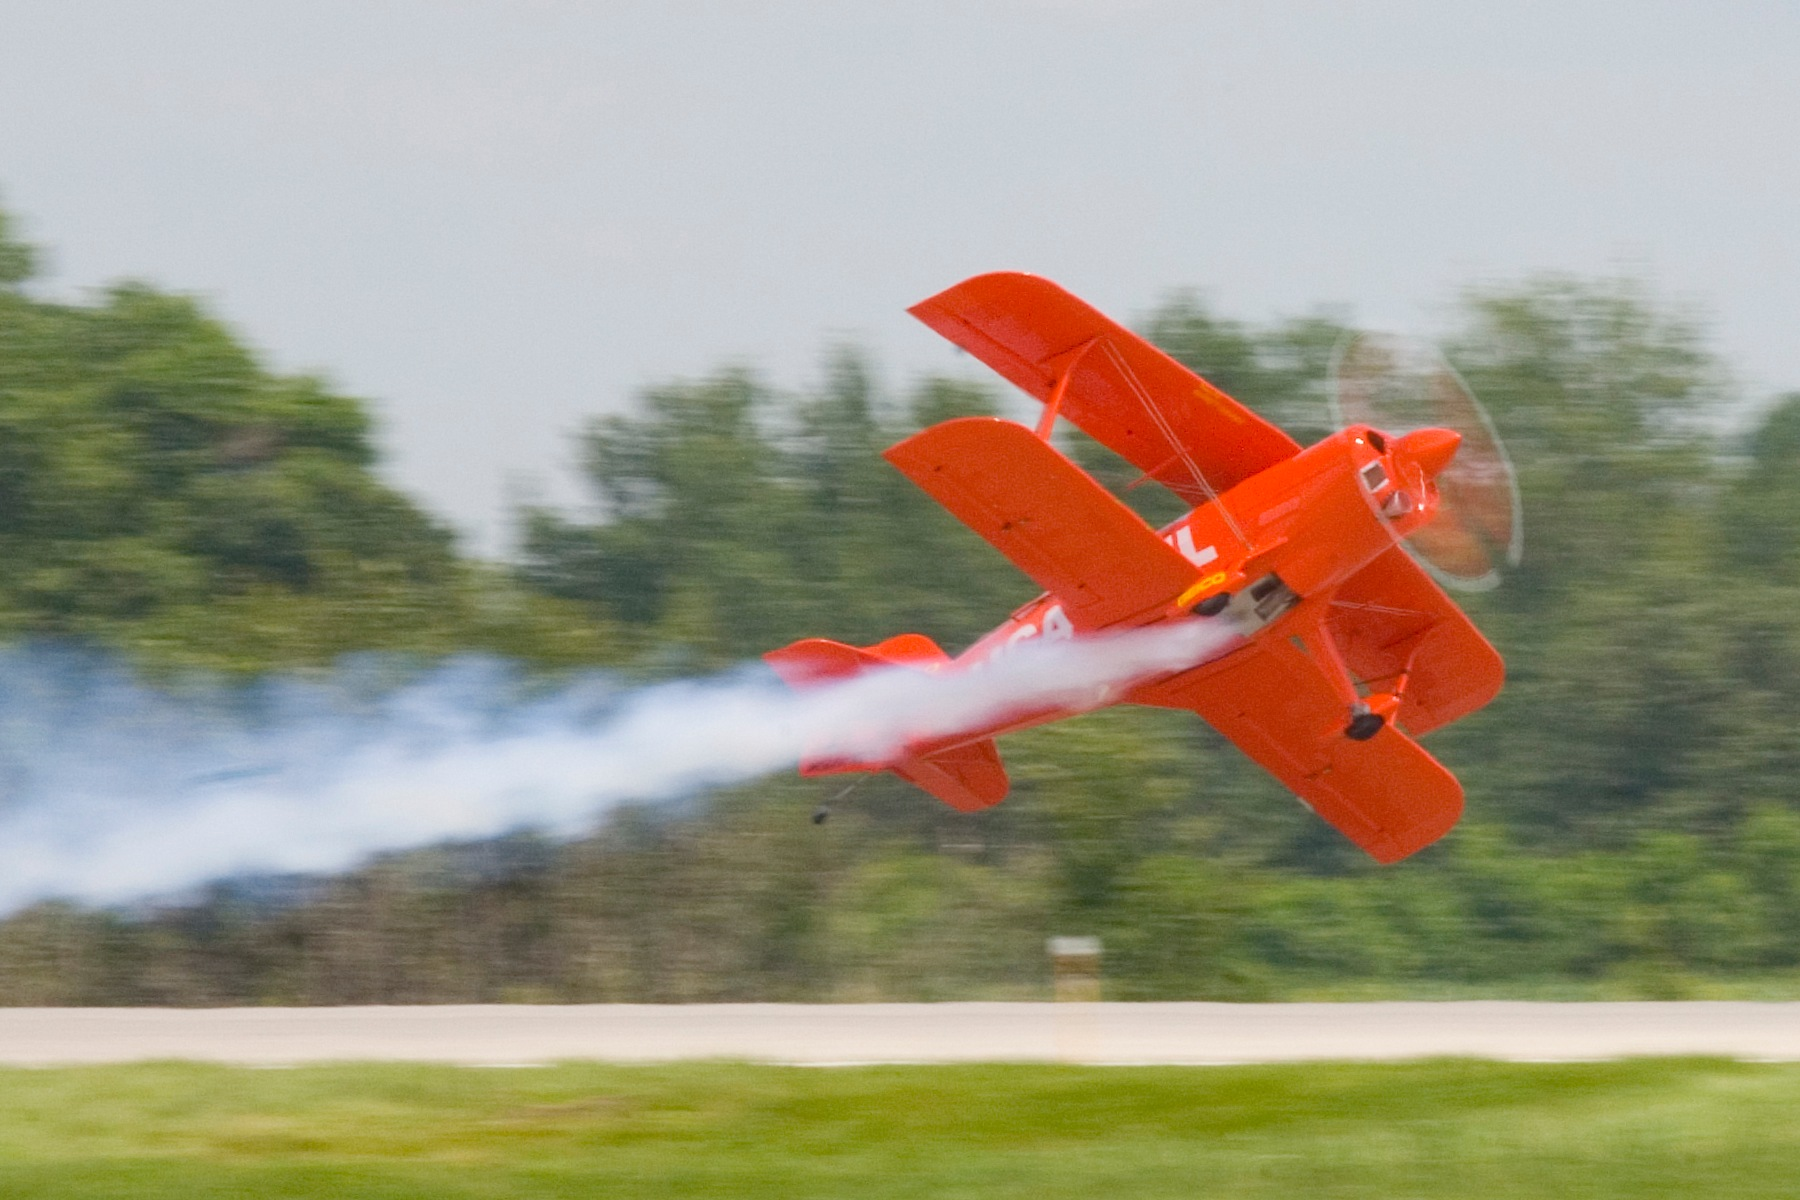 Lucas oil biplane flying sideways above runway by Bernard Mordorski